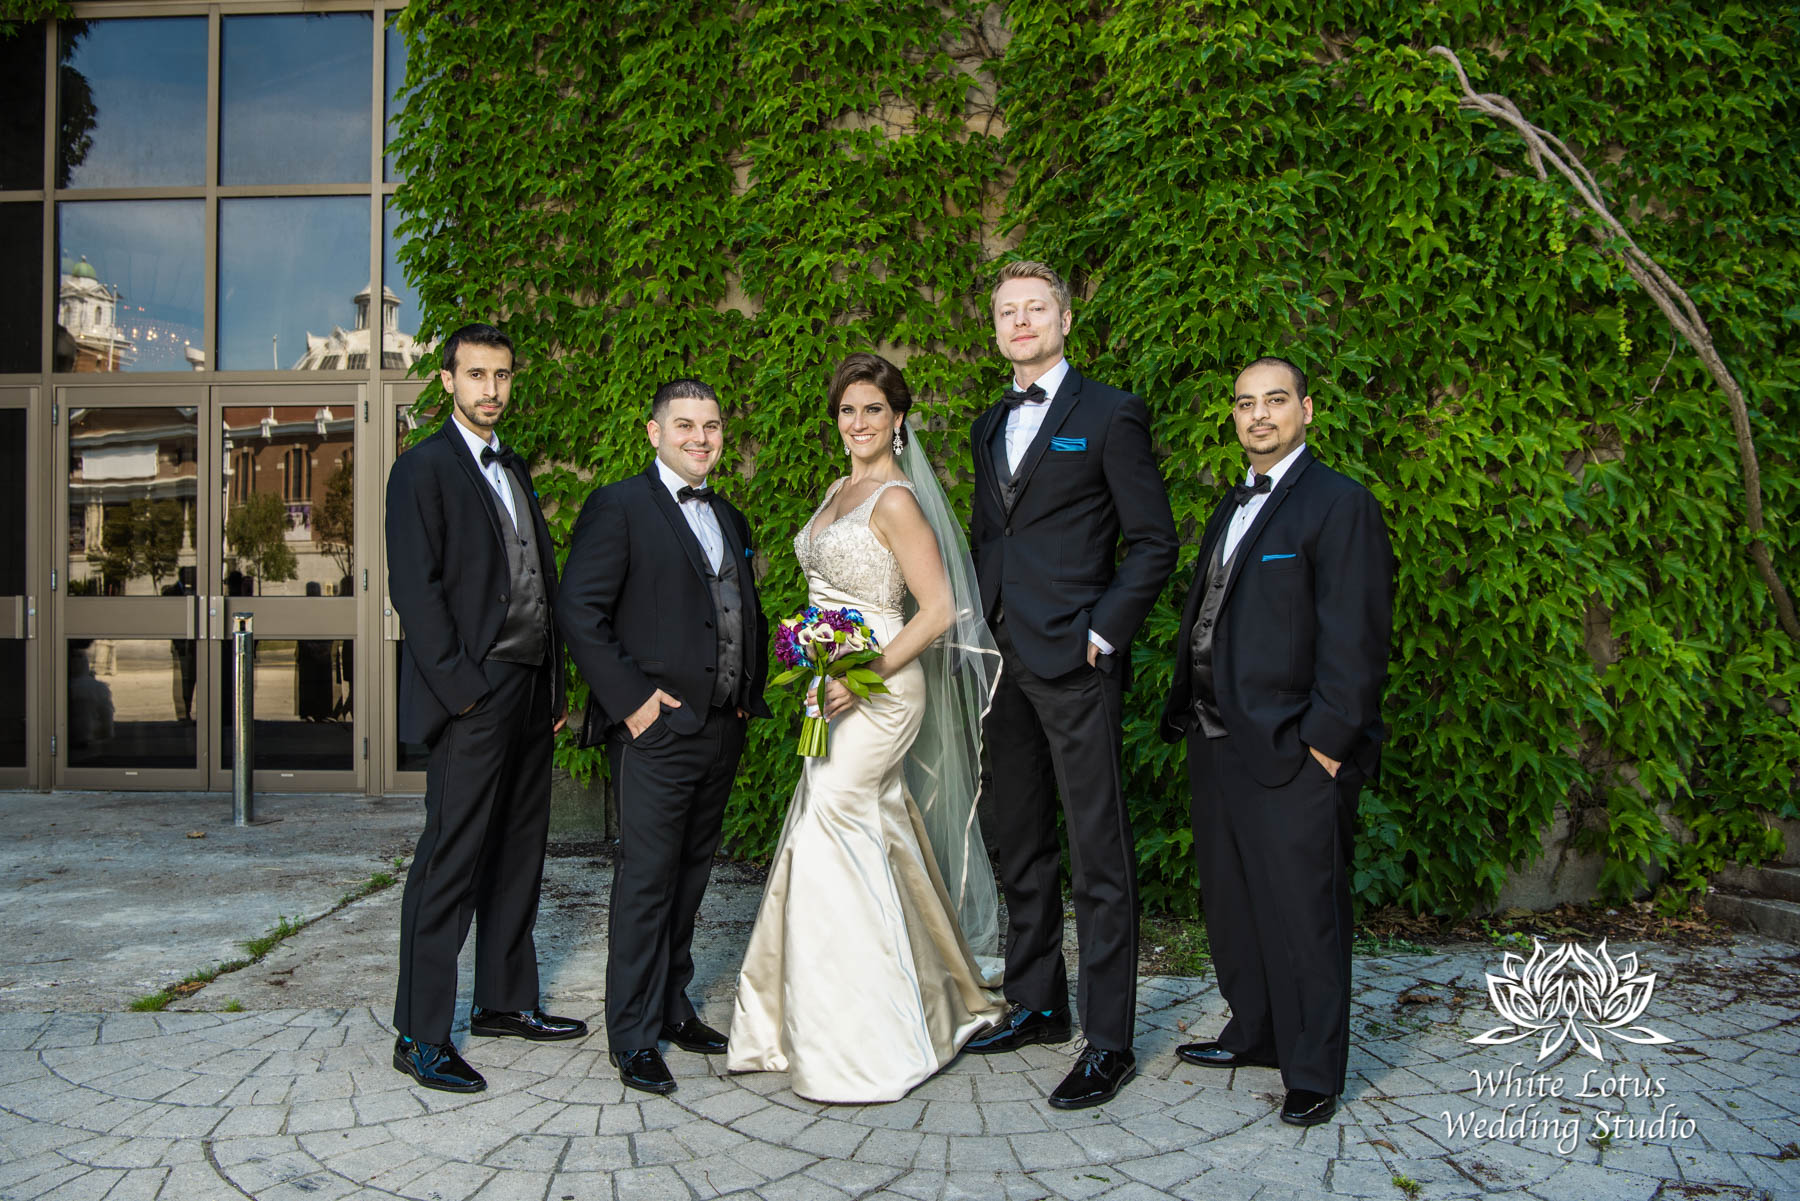 161 - Wedding - Toronto - Liberty Grand - Bridal Party - PW